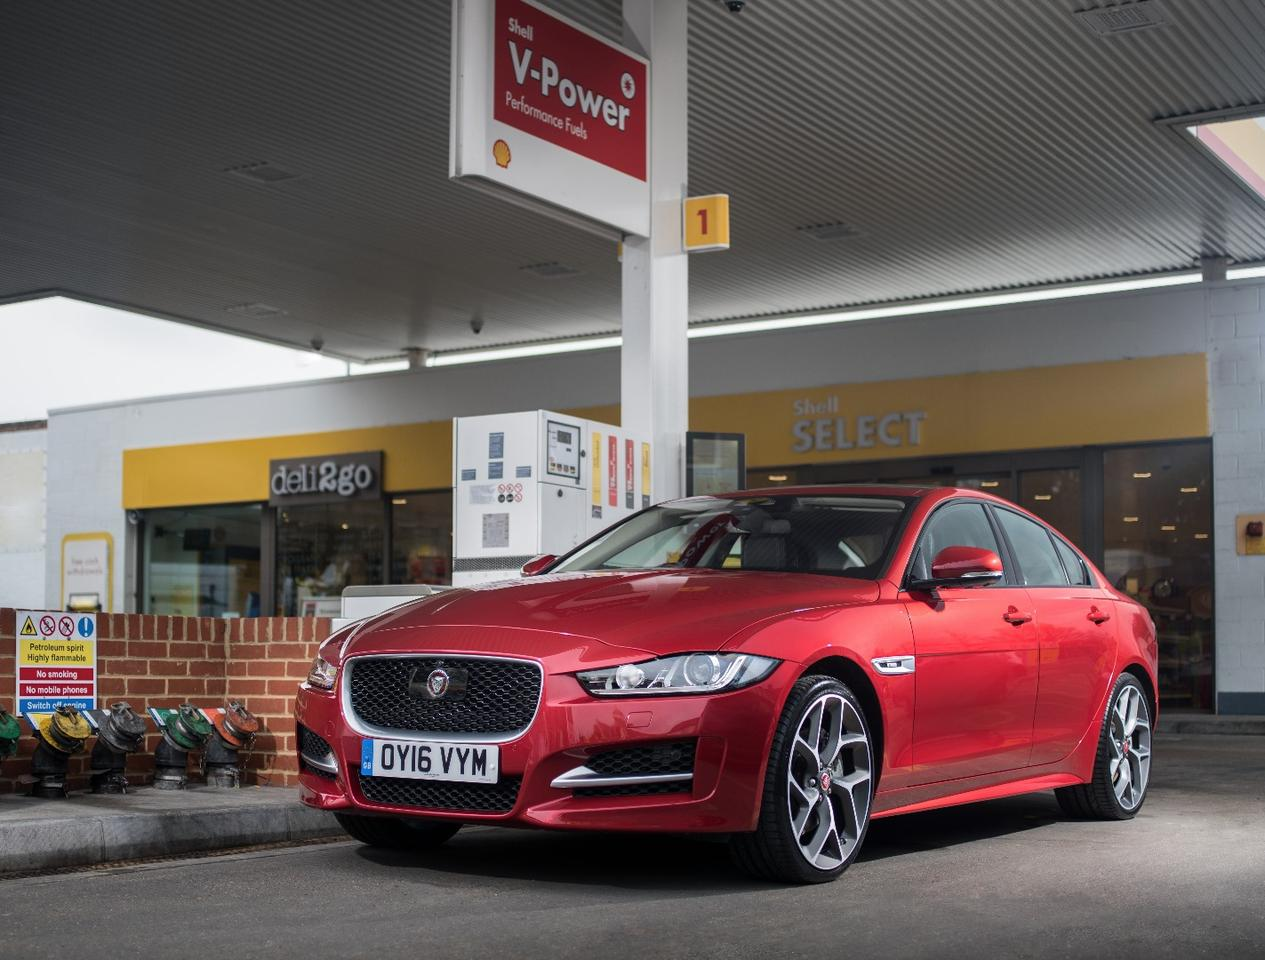 The Jaguar XEsupports the Shell mobile pay app